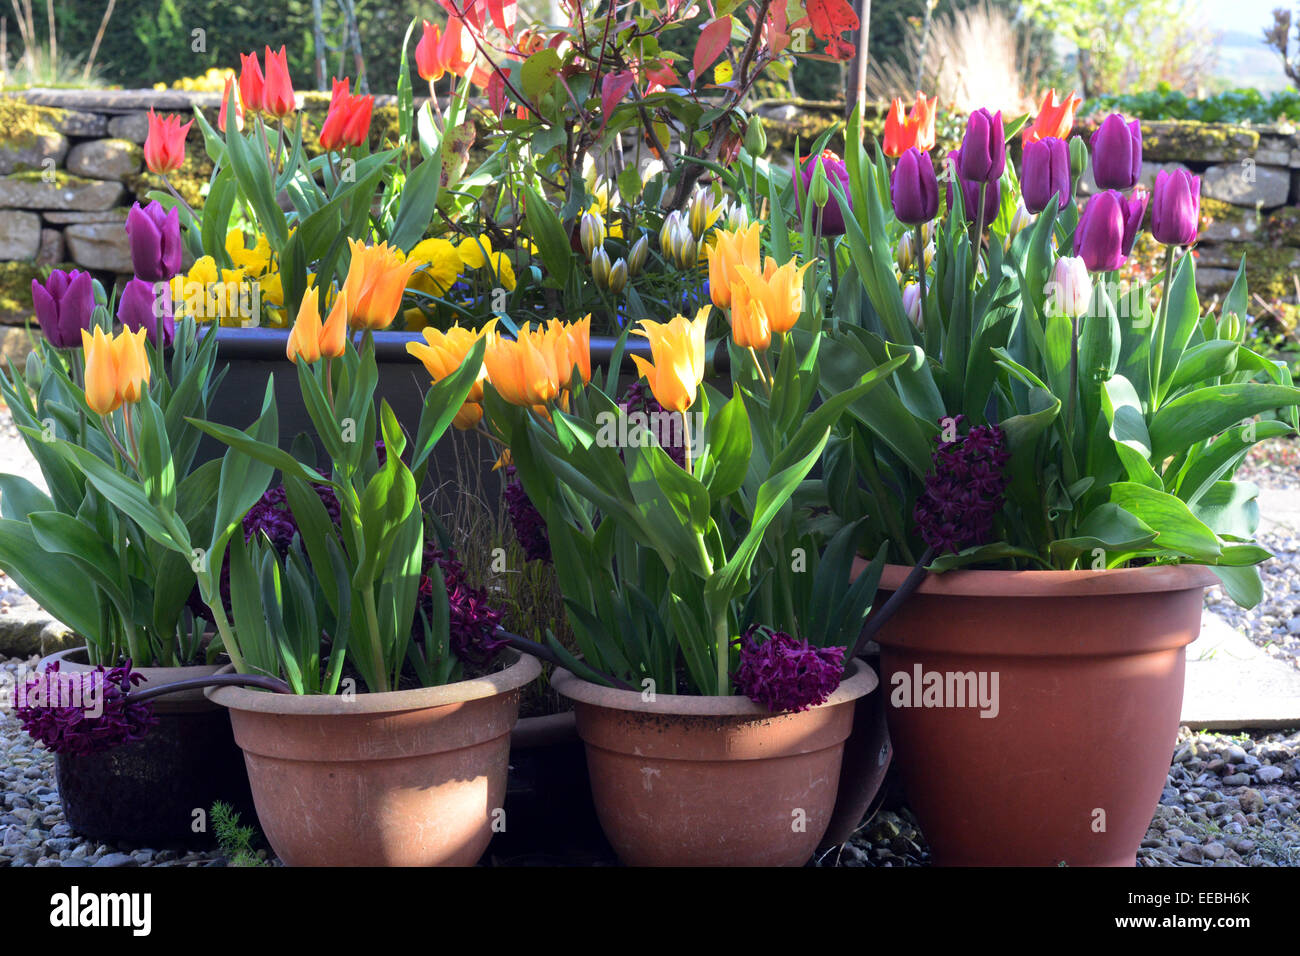 Spring Flowers In Pots On A Patio Stock Photo 77701643 Alamy